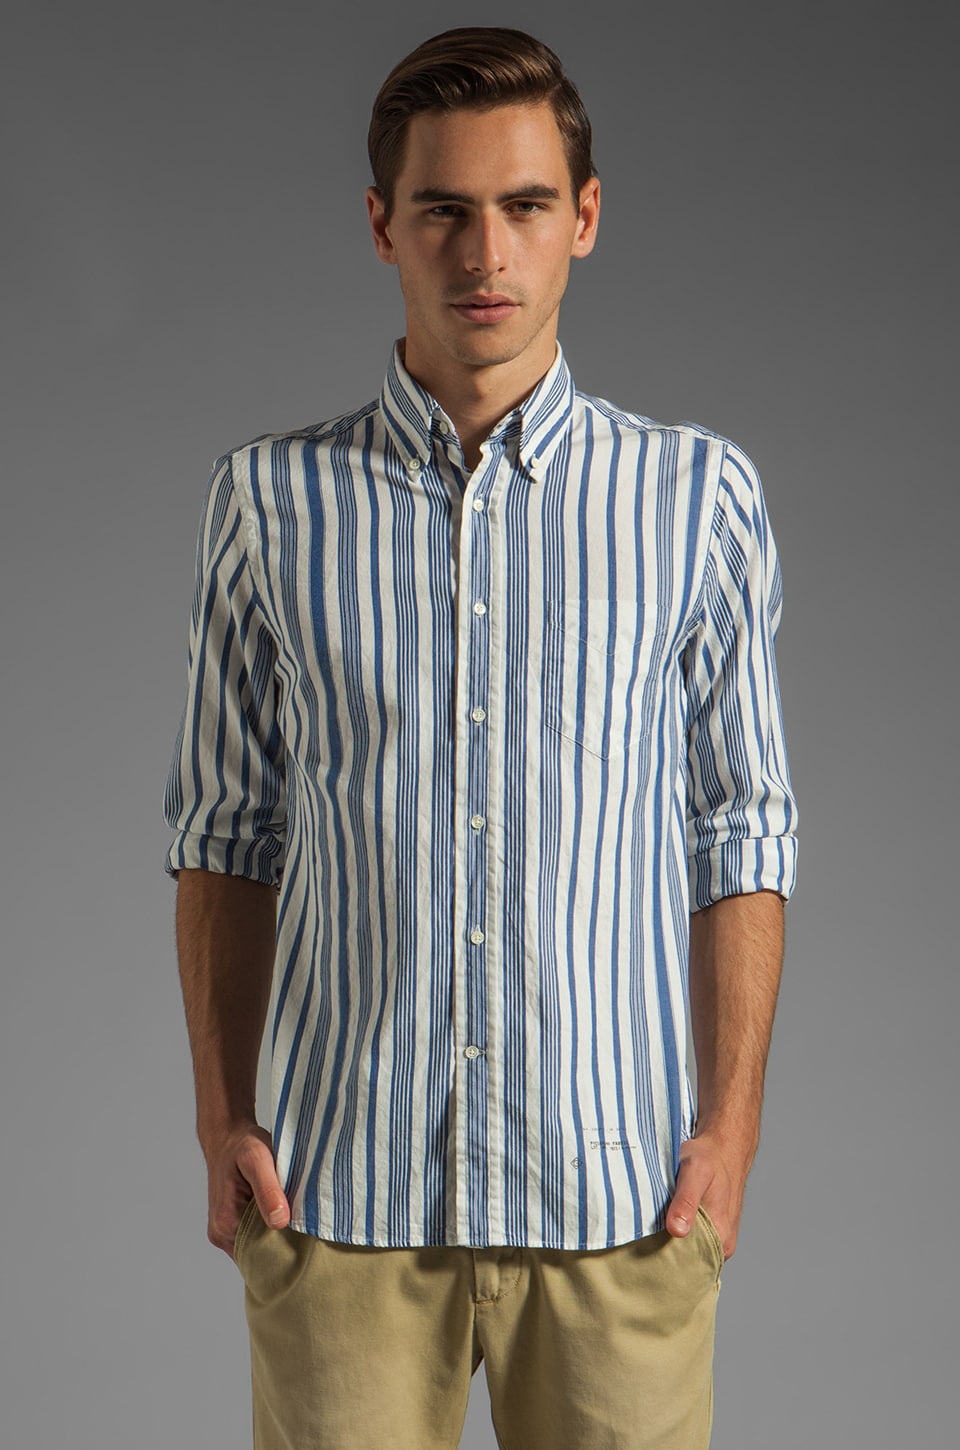 GANT Rugger Dreamy Oxford Awning Stripe HOBD Shirt in Blue/White Stripe